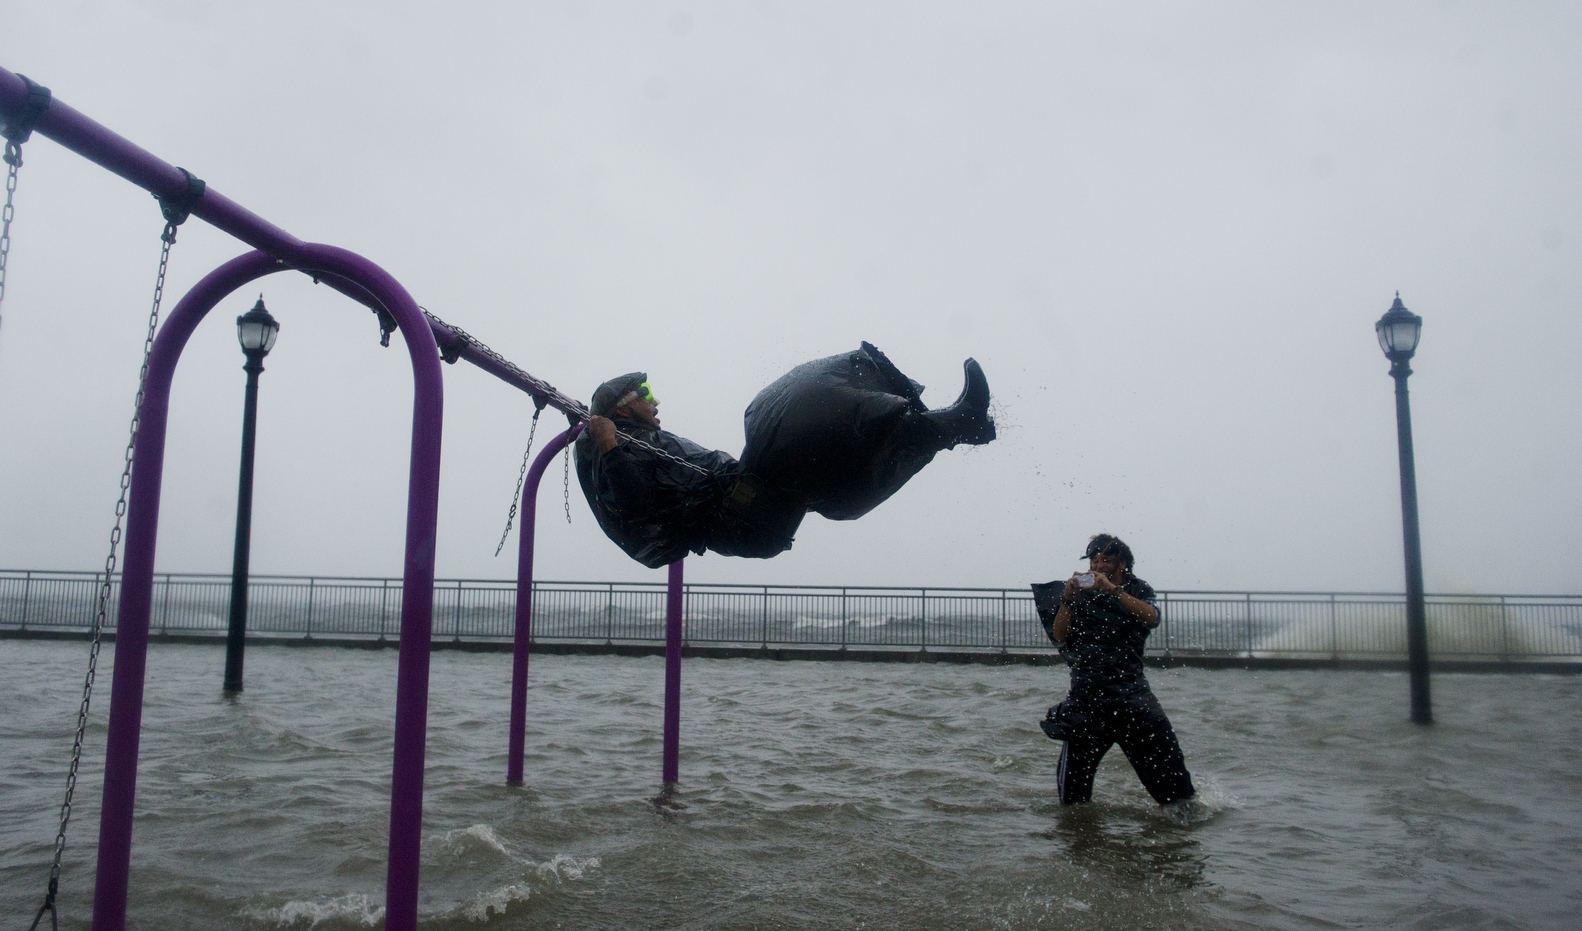 A group gathers in a flooded park as Hurricane Sandy makes landfall.